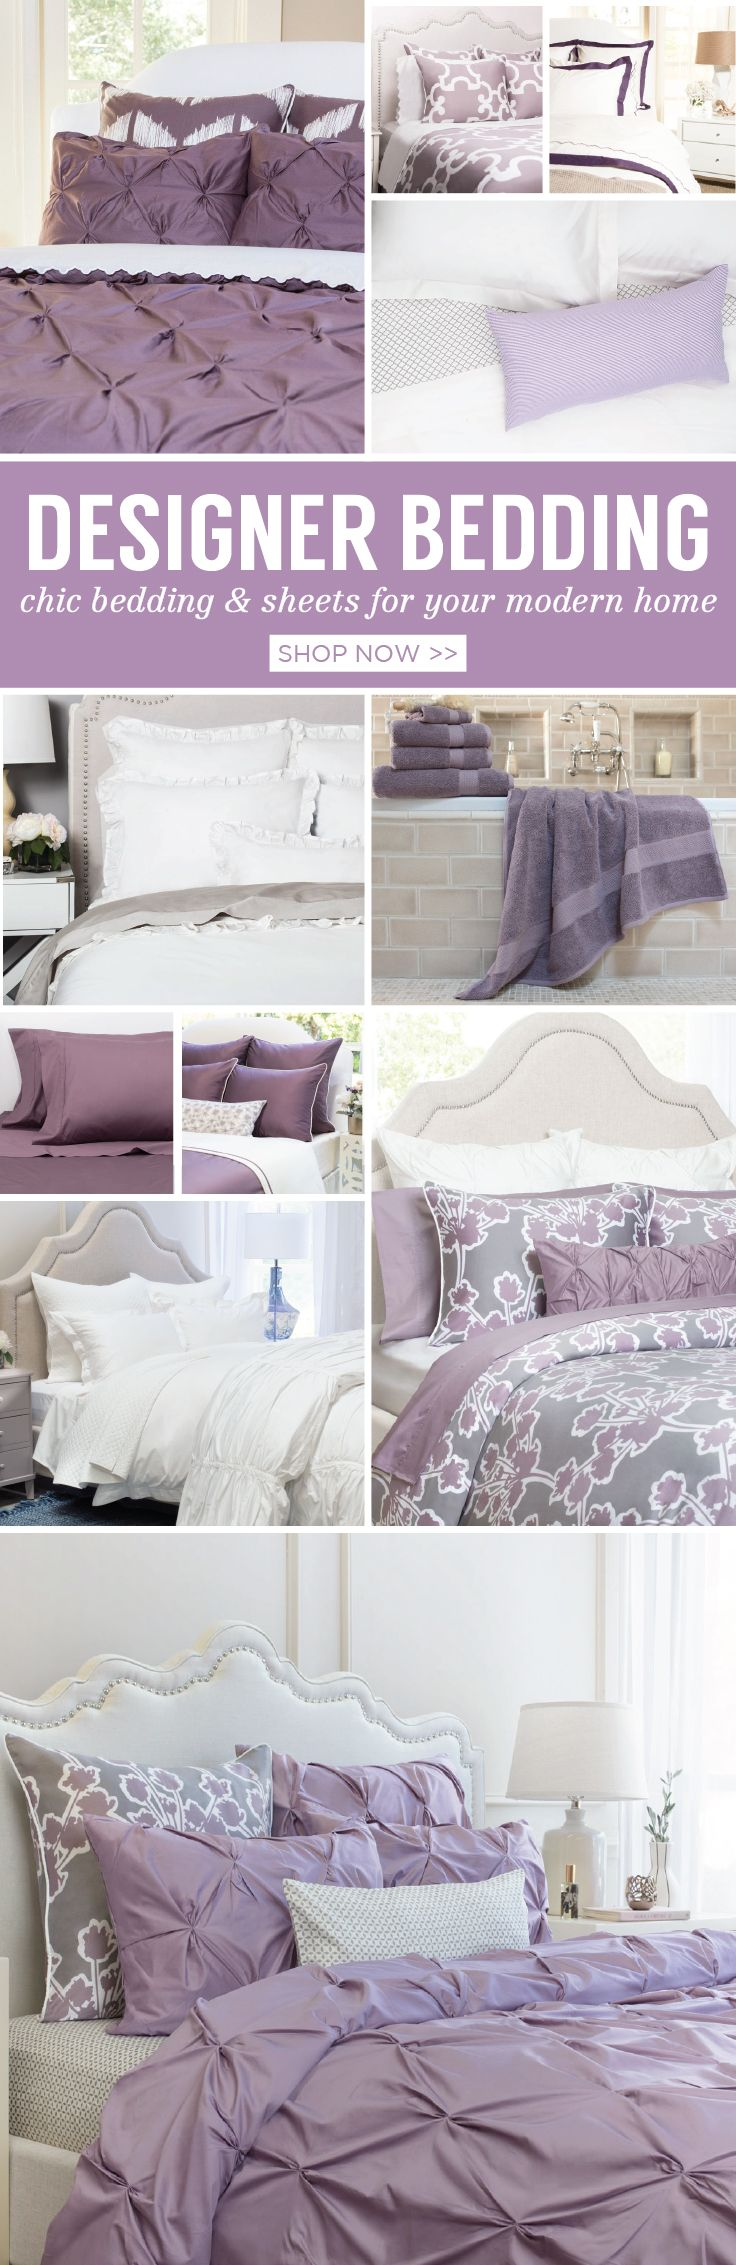 It's Pantone's 2018 Color of the Year! From silky-smooth duvet covers, luxury sheet sets, cozy quilts and comforters, discover beautiful bedding and bath towels in the colors of Ultra Violet.  As seen on the Today Show.